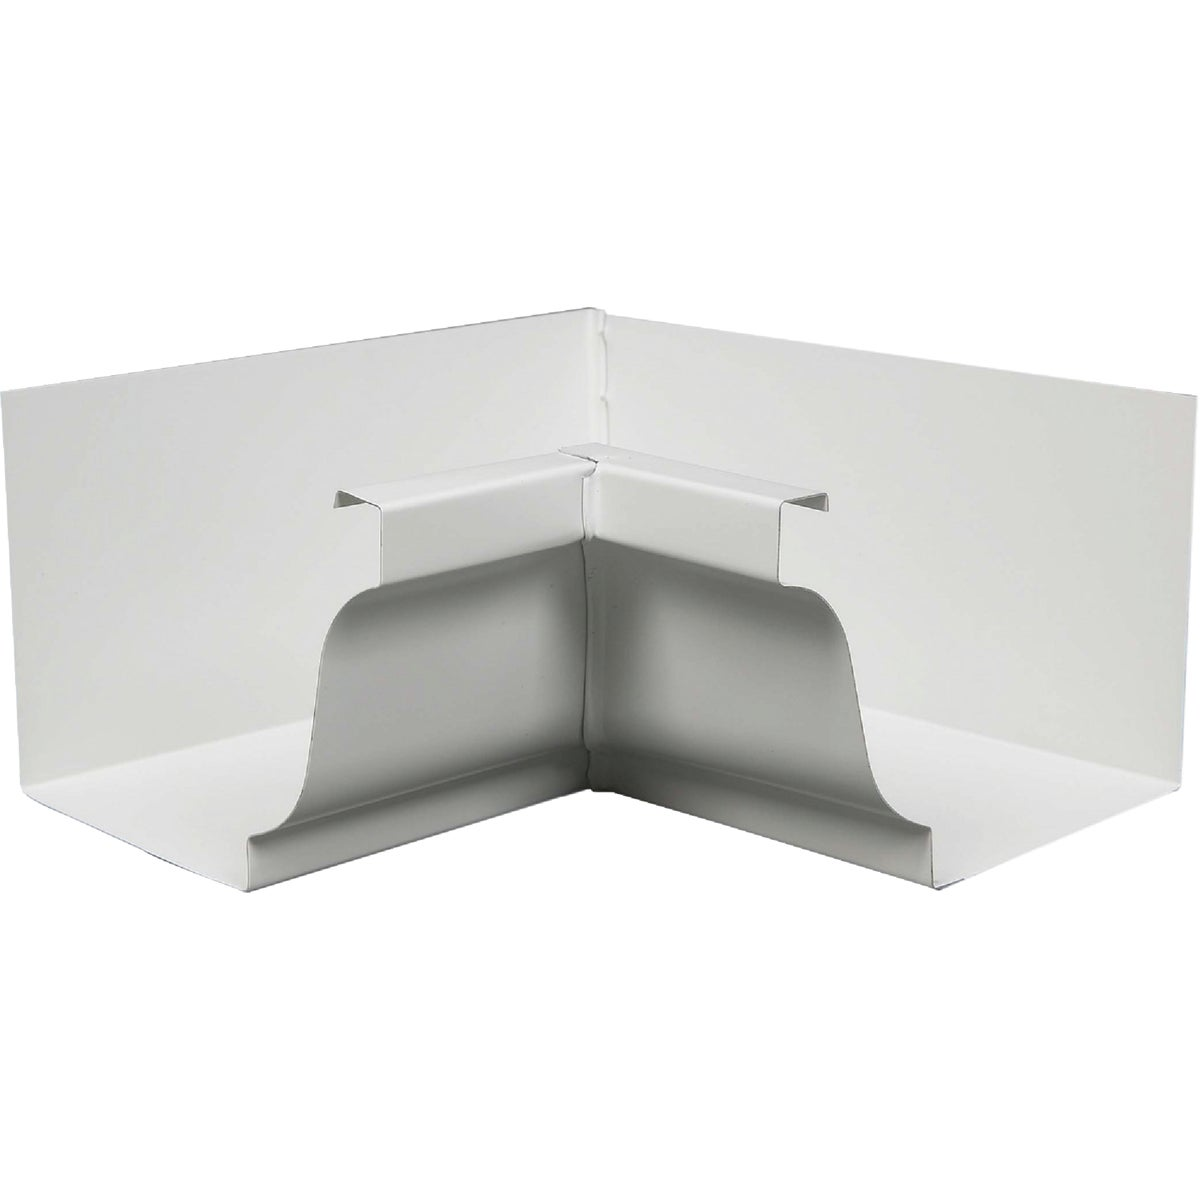 "4"" WHITE INSIDE MITRE - 19201 by Amerimax Home Prod"